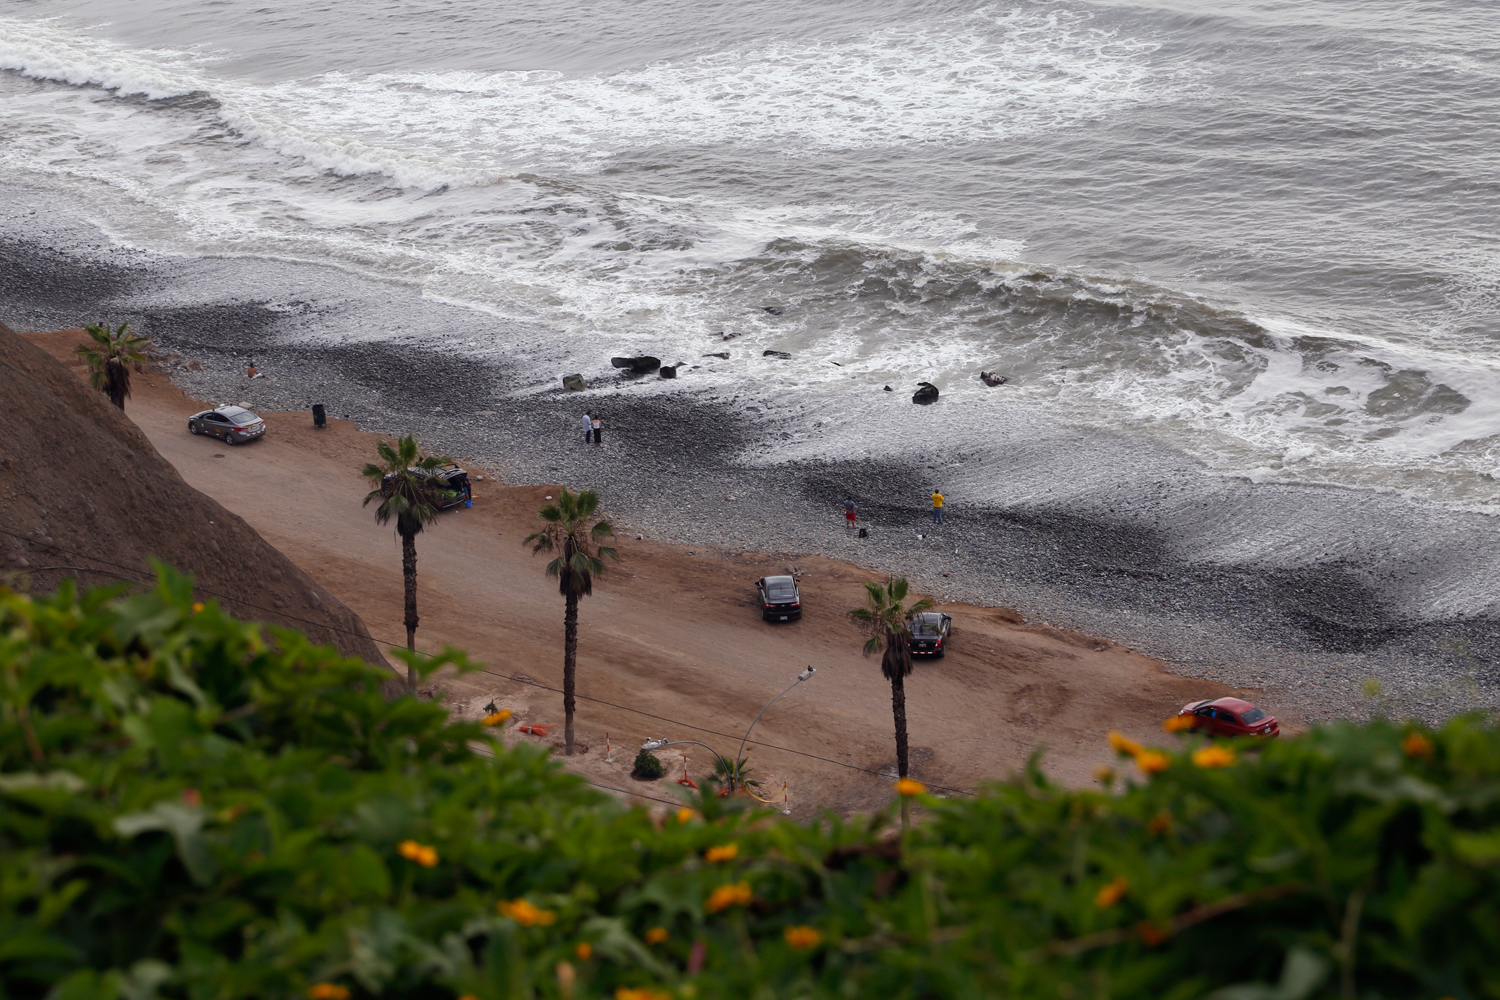 As seen from above, a number of limousines are parked along a dirt road leading to a gravel beach. Framed by the yellow blossoms of a cliff side bush and a row of palm trees, a handful of people are staring into the distance as grey, foamy waves crash onto the grey beach.